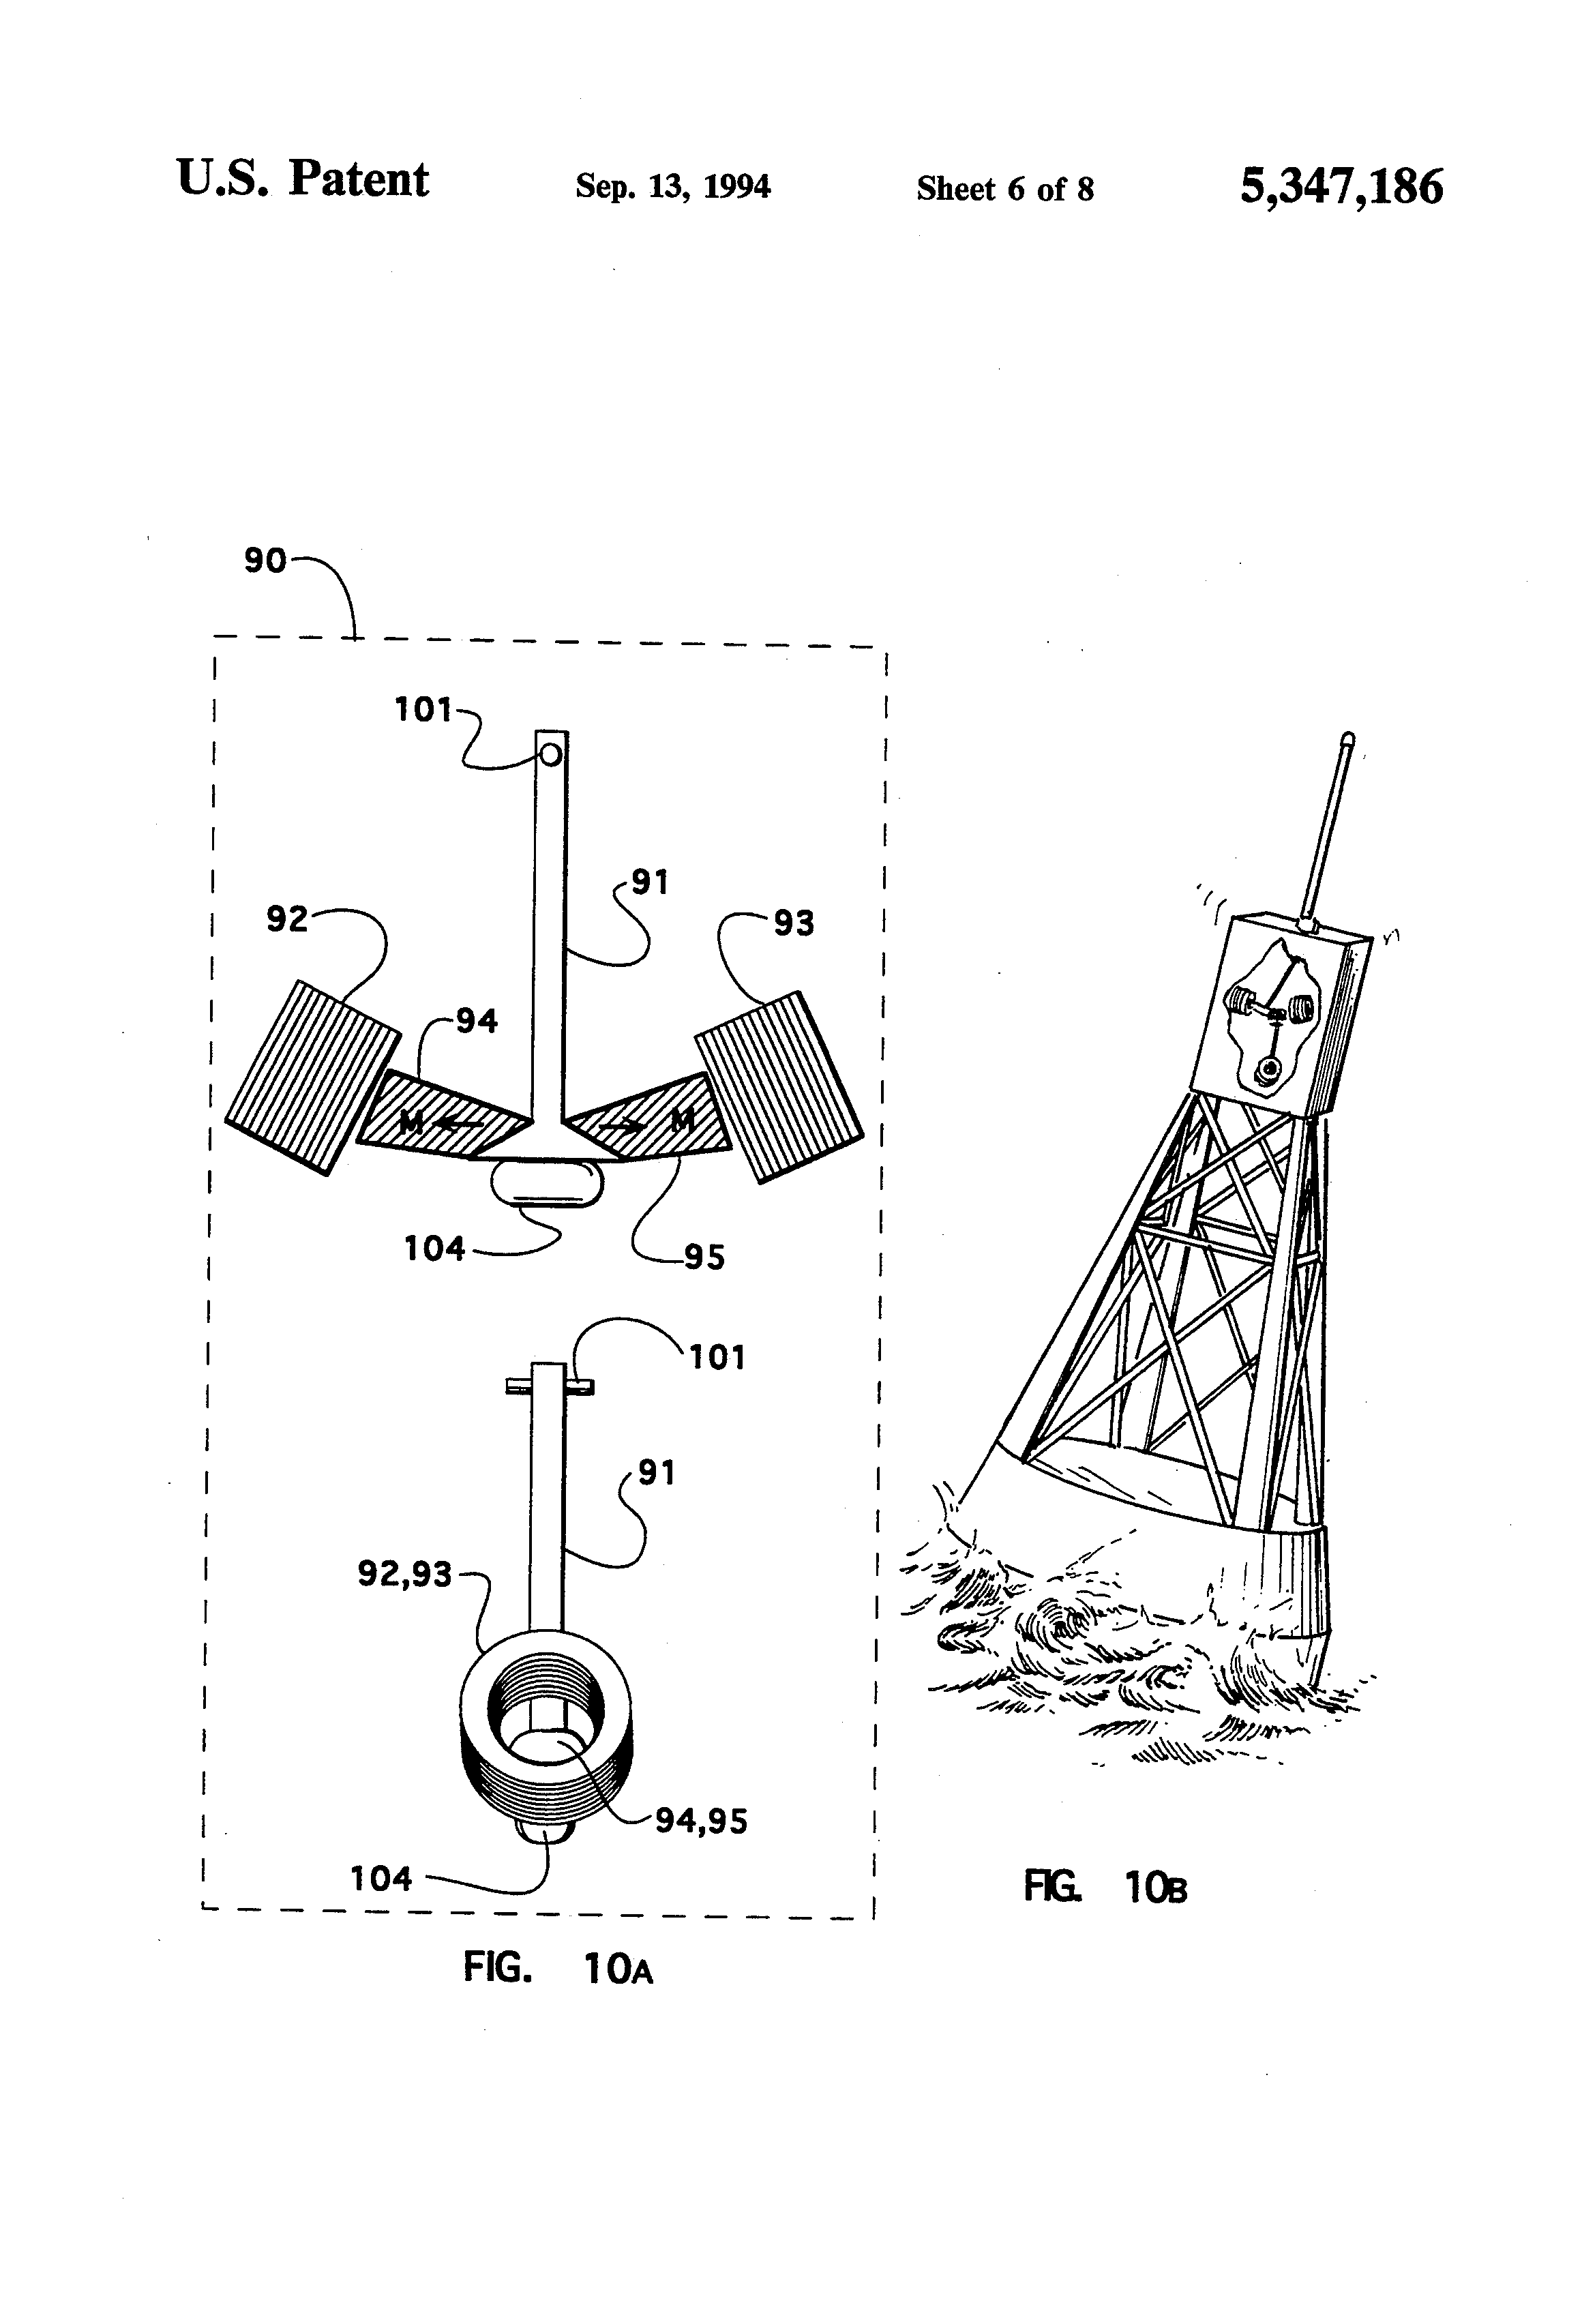 US7182852 as well Basic Electrical  work Theory in addition Electric Light Bulb 18560 in addition US5347186 additionally P 0900c1528003a29e. on electric current